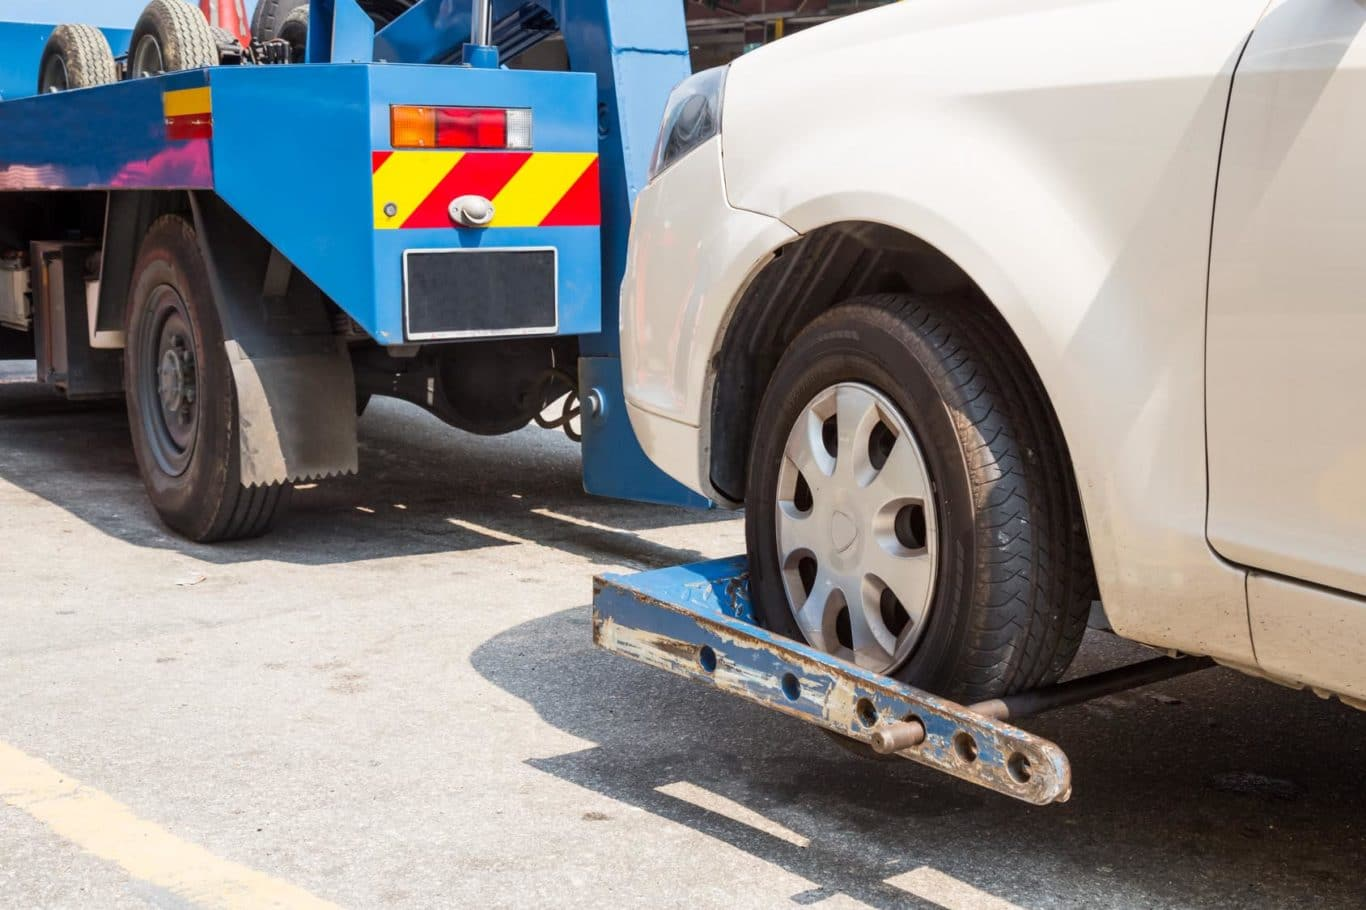 Dublin 6W (D6W) Dublin, South Dublin expert Breakdown Recovery services